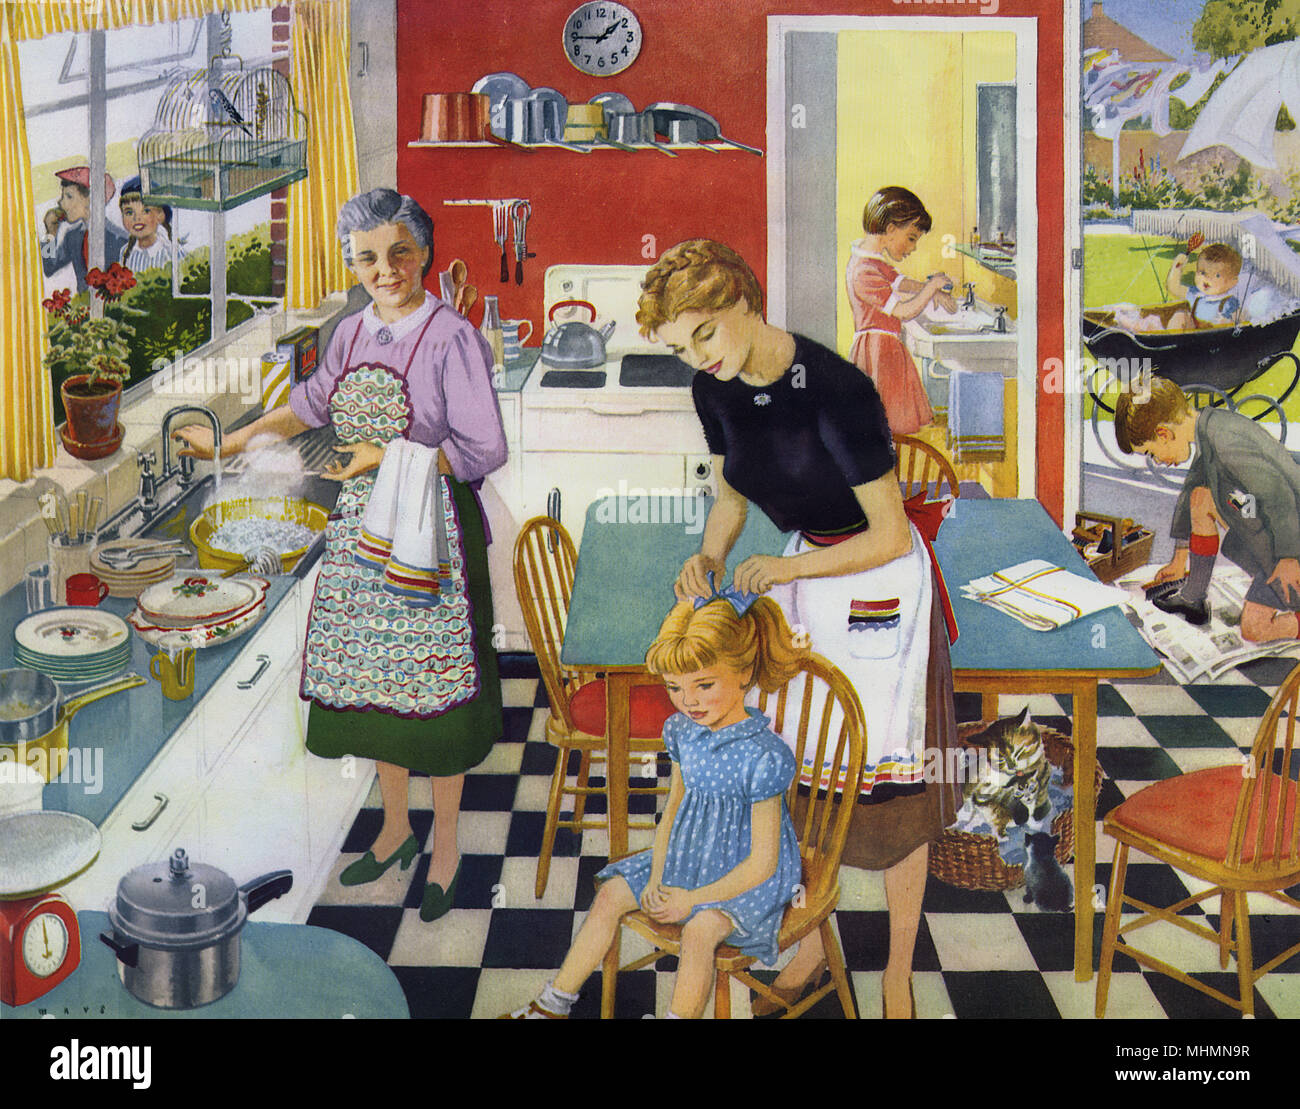 Idyllic domestic scene inside a family kitchen.  Older children are getting ready for school and while one daughter of the house sits and has her hair brushed by mother, another conscientiously washes her hands in a downstairs bathroom.  Son of the house, smart in his school uniform, dutifully polishes his shoes and a chubby baby is already out in the garden in a pram, cheerfully shaking a rattle.  Grandma does the washing up and even the cat tends to her kittens in a basket underneath the table.  No sign of a patriarchal presence but presumably he's the sole breadwinner and has already gone o - Stock Image